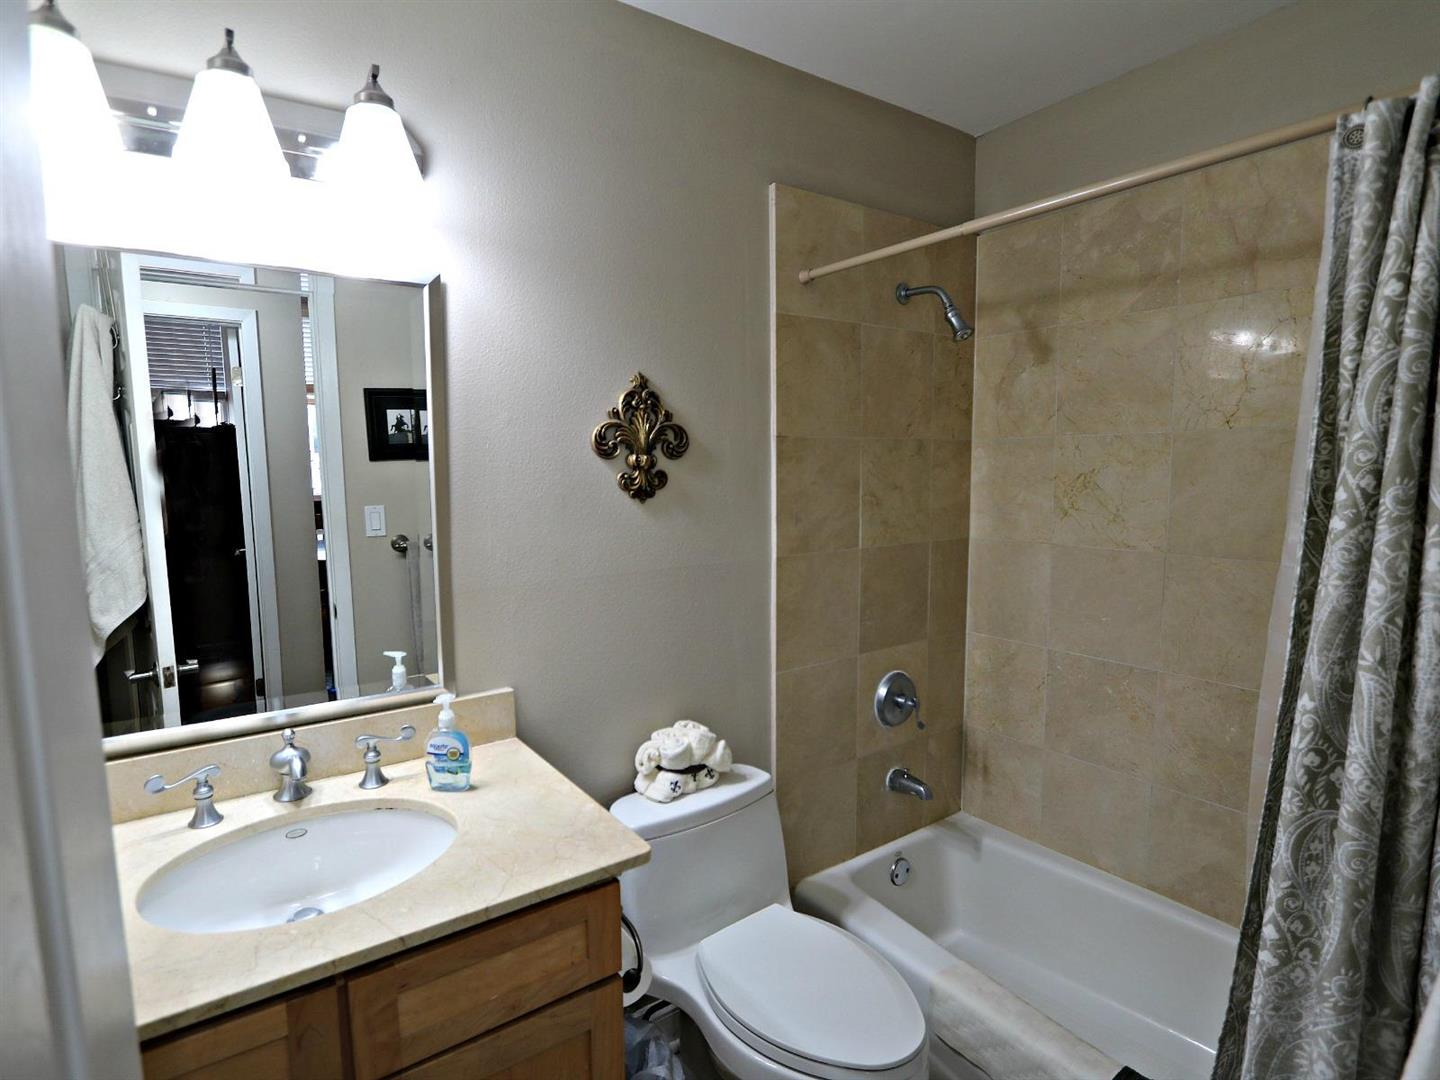 760MagazineSt.Condo211Bathroom.jpg